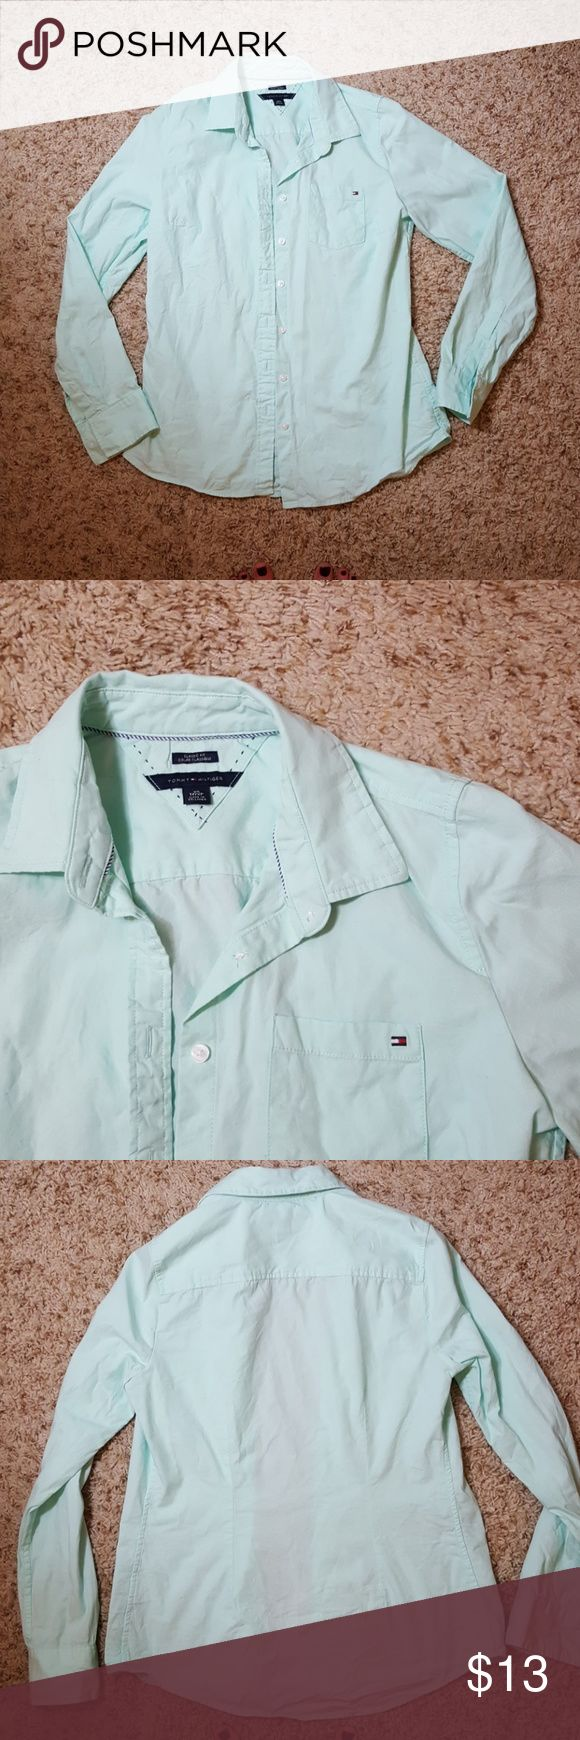 Tommy Hilfiger mint green shirt Tommy Hilfiger Oxford shirt in cute mint green color. Very high quality fabric... only worn a few times so in mint condition! Tommy Hilfiger Tops Button Down Shirts